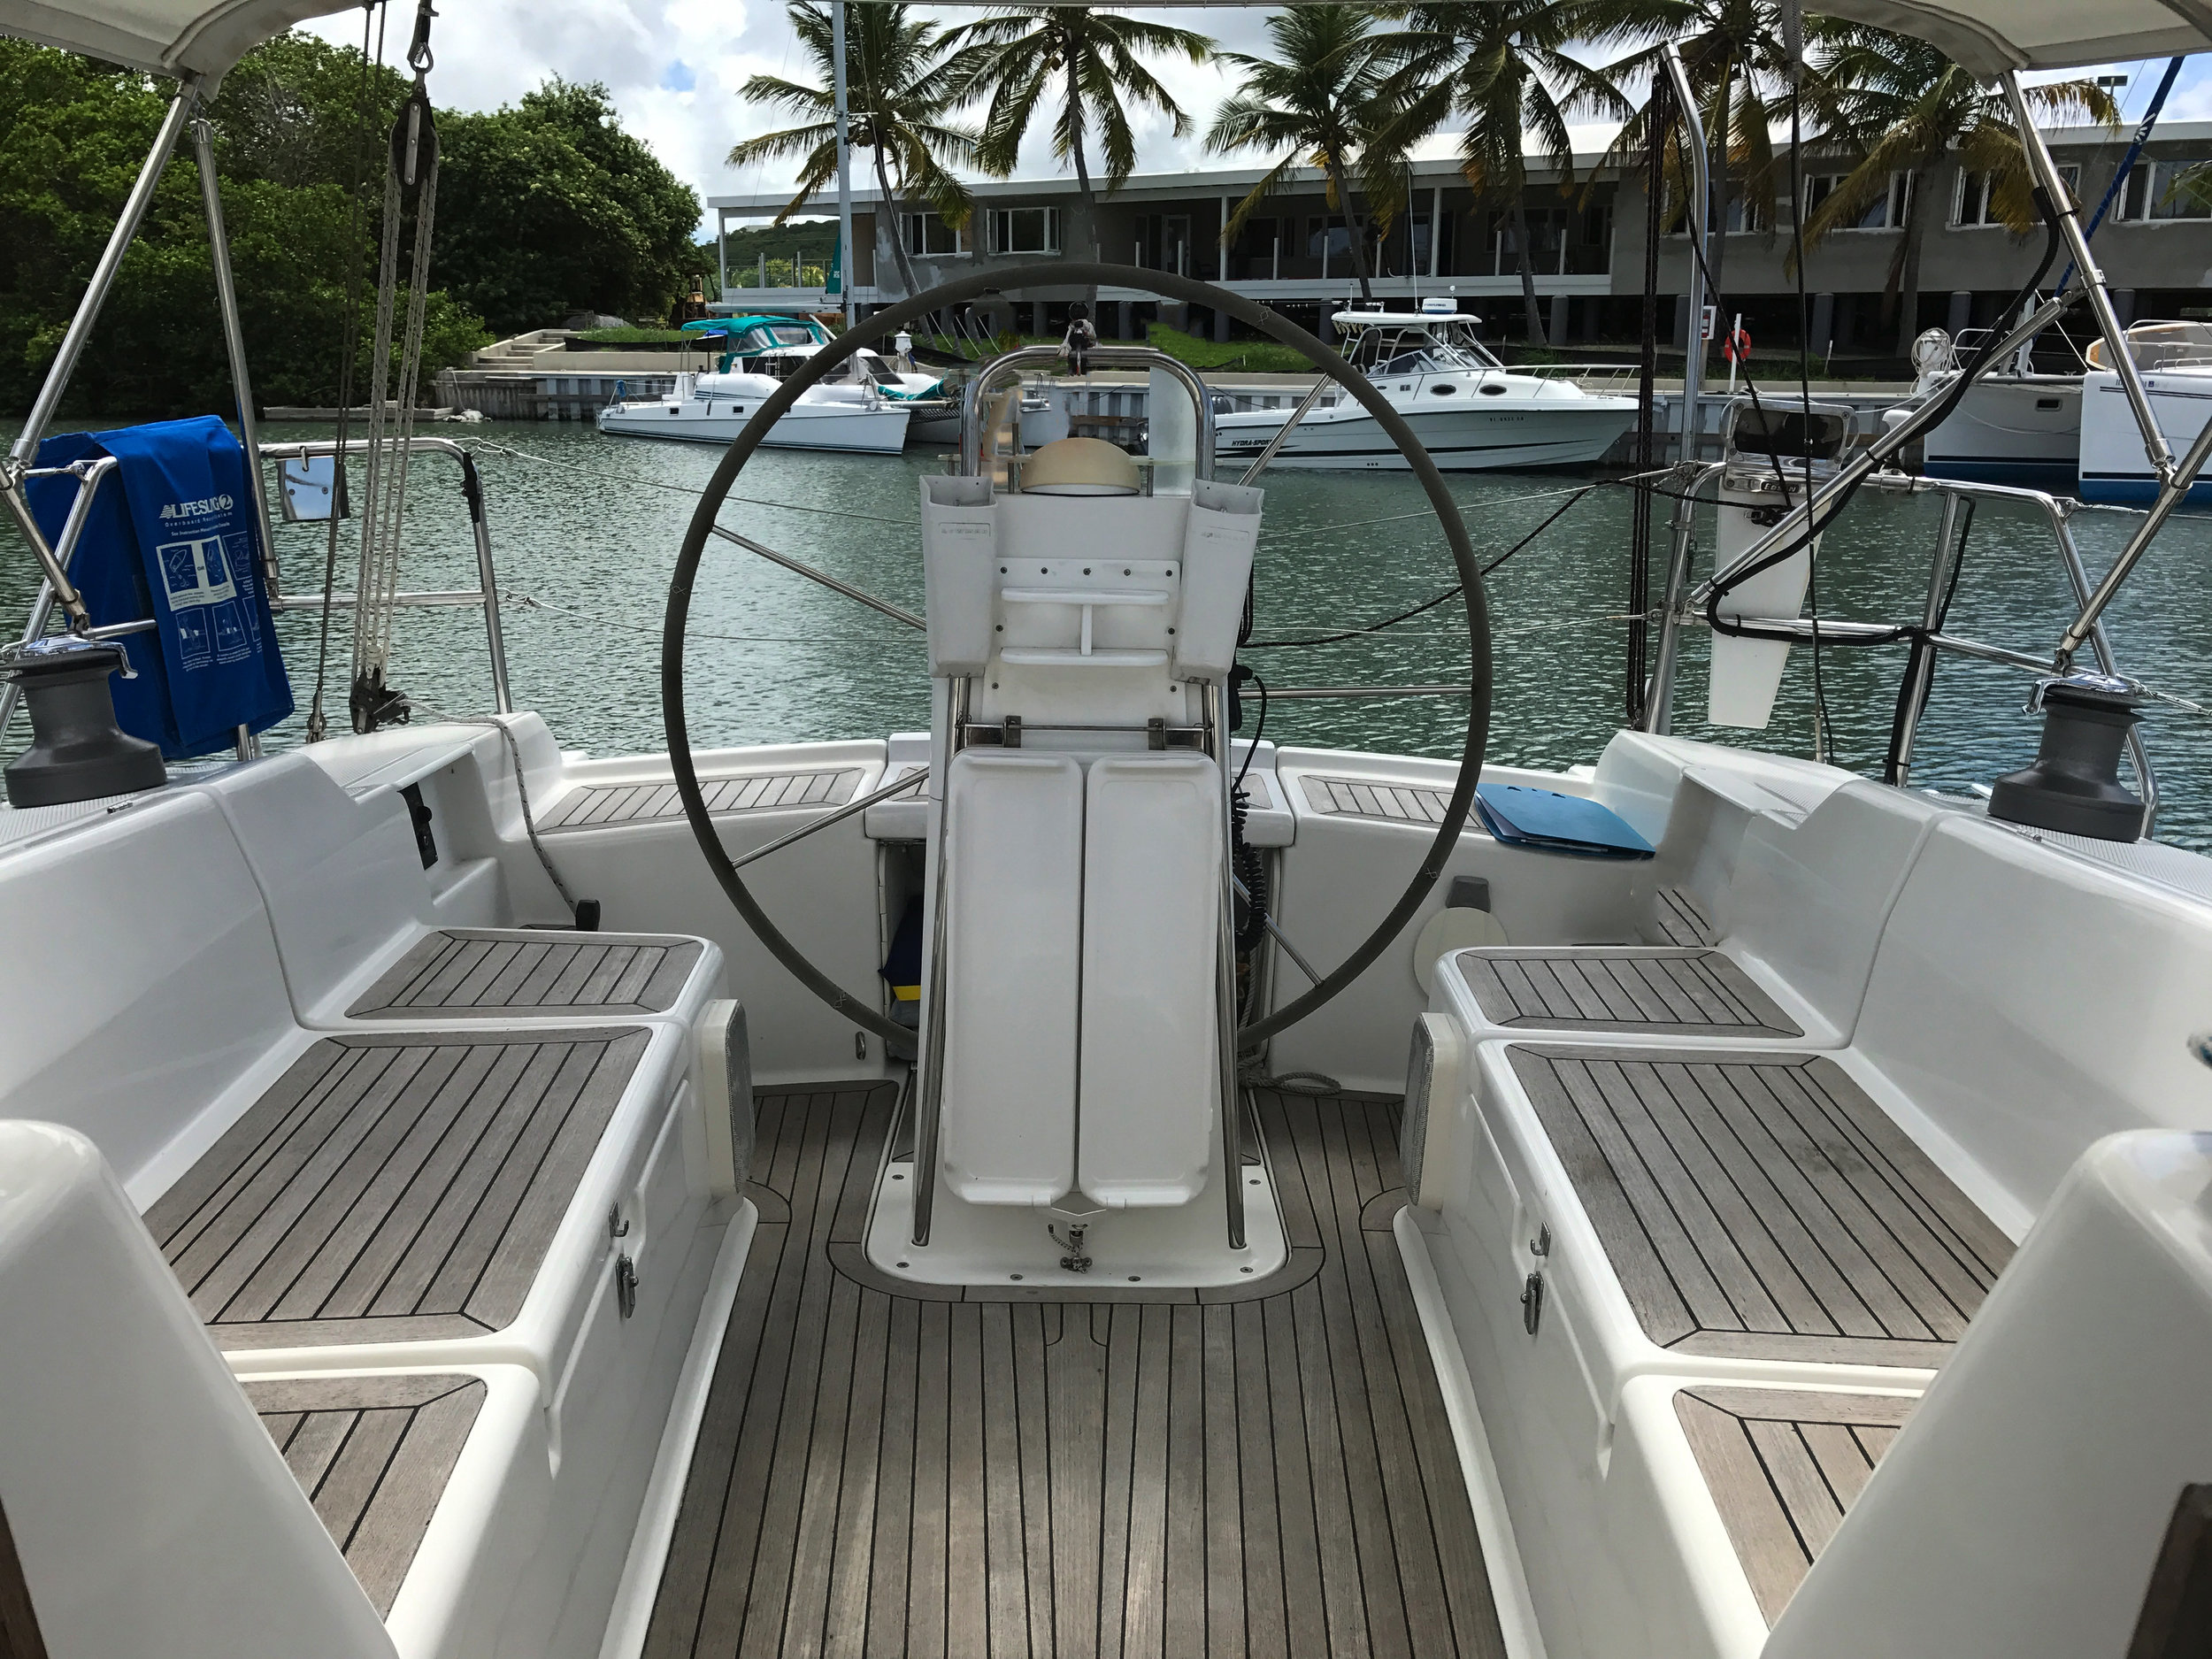 Lightheart's cockpit at the dock